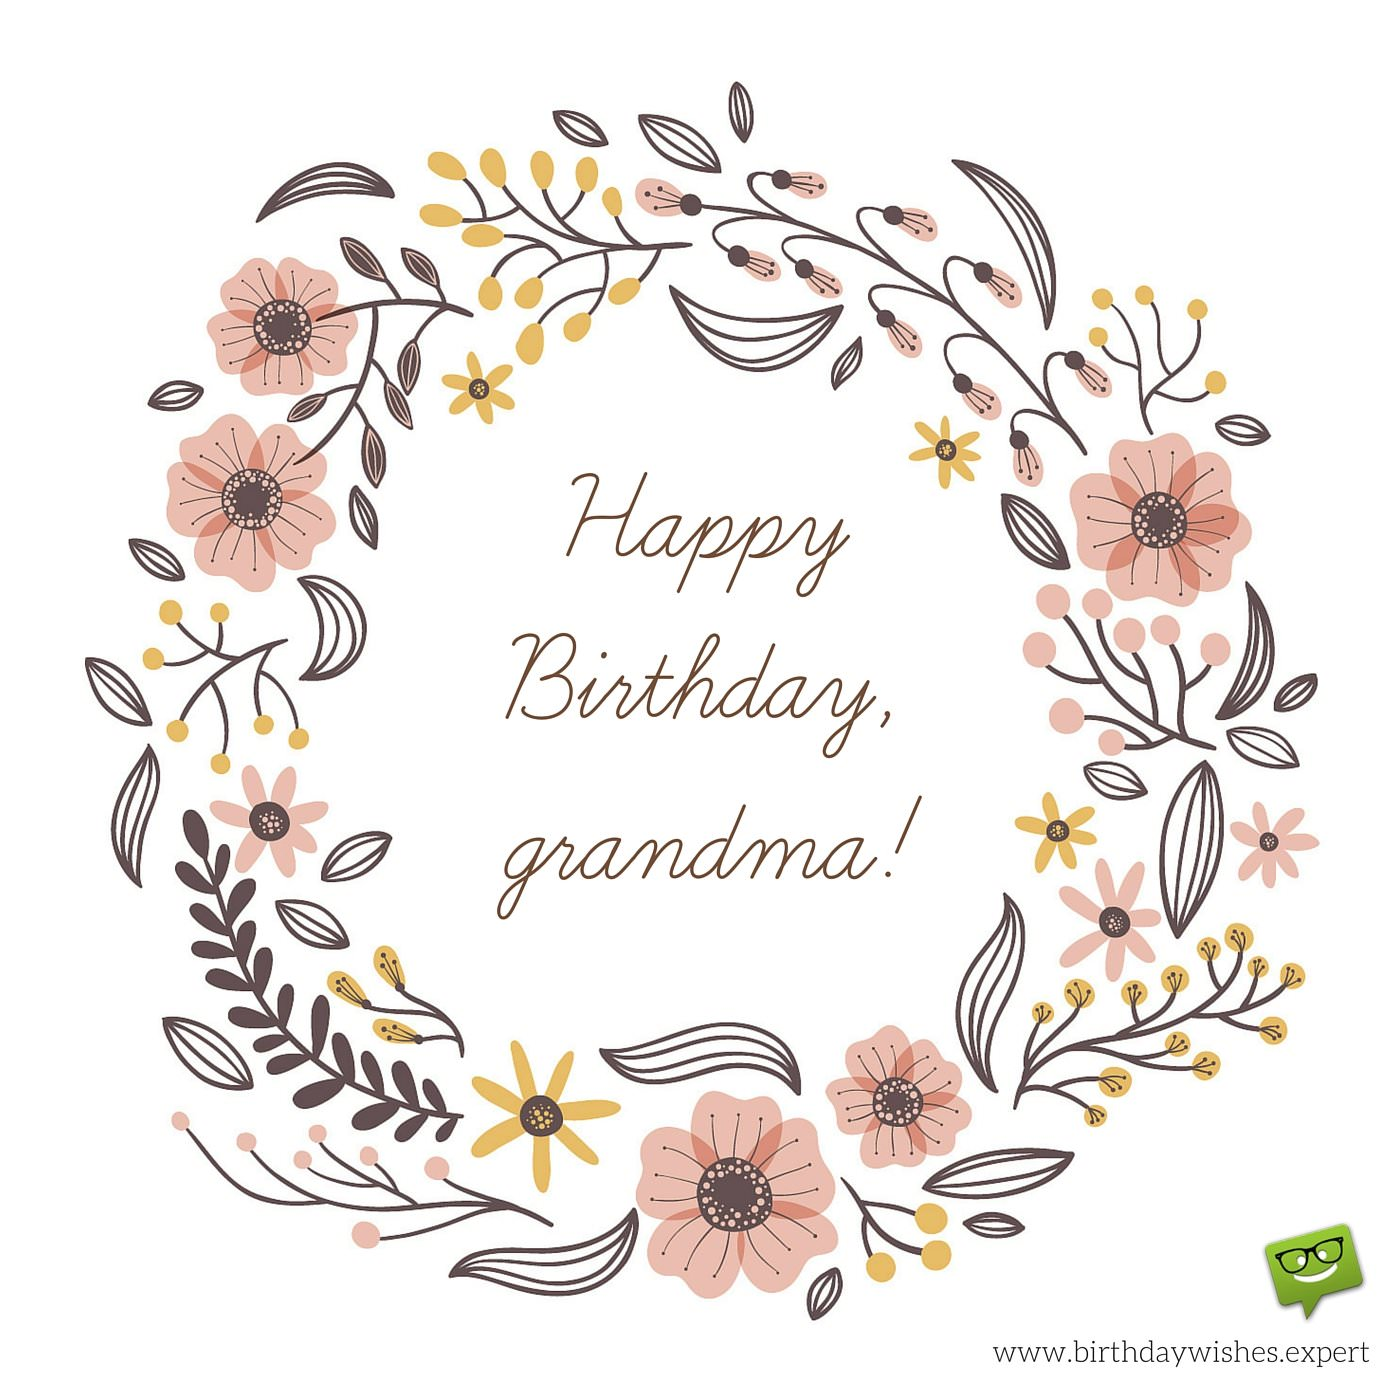 happy birthday granny ; Happy-Birthday-Grandma-On-image-with-hand-drawn-flowers